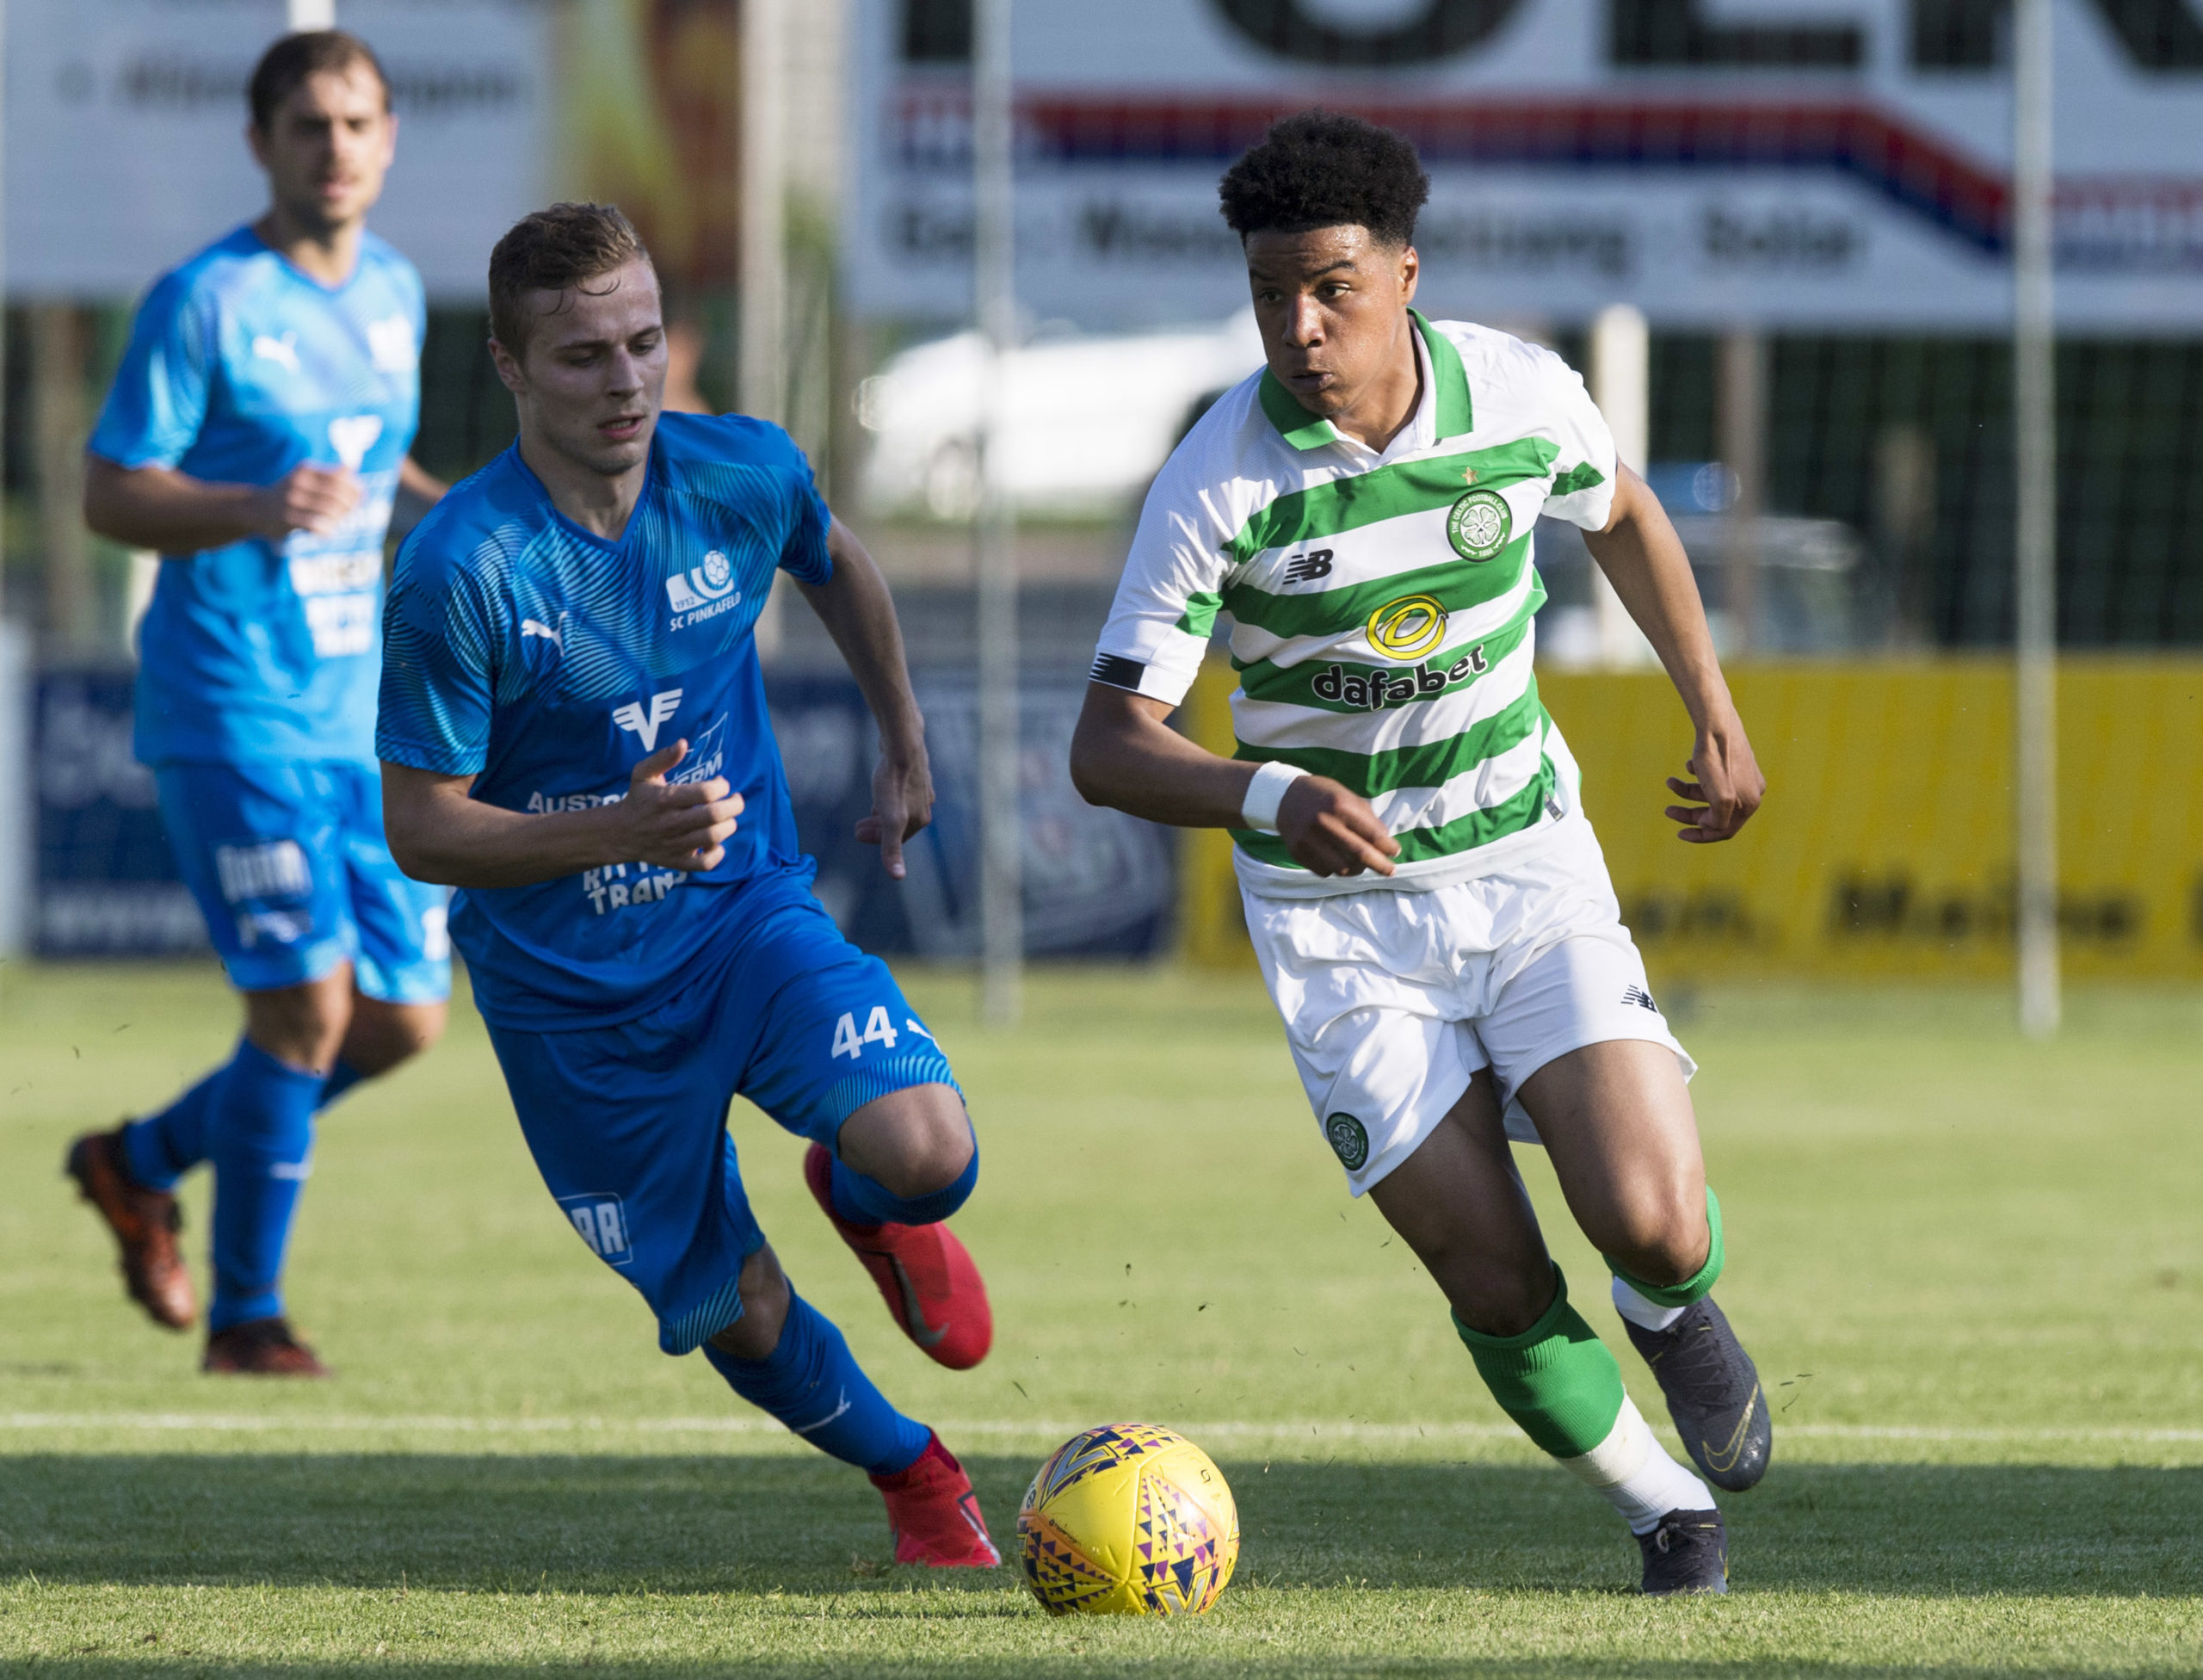 Celtic youngster Armstrong Okoflex